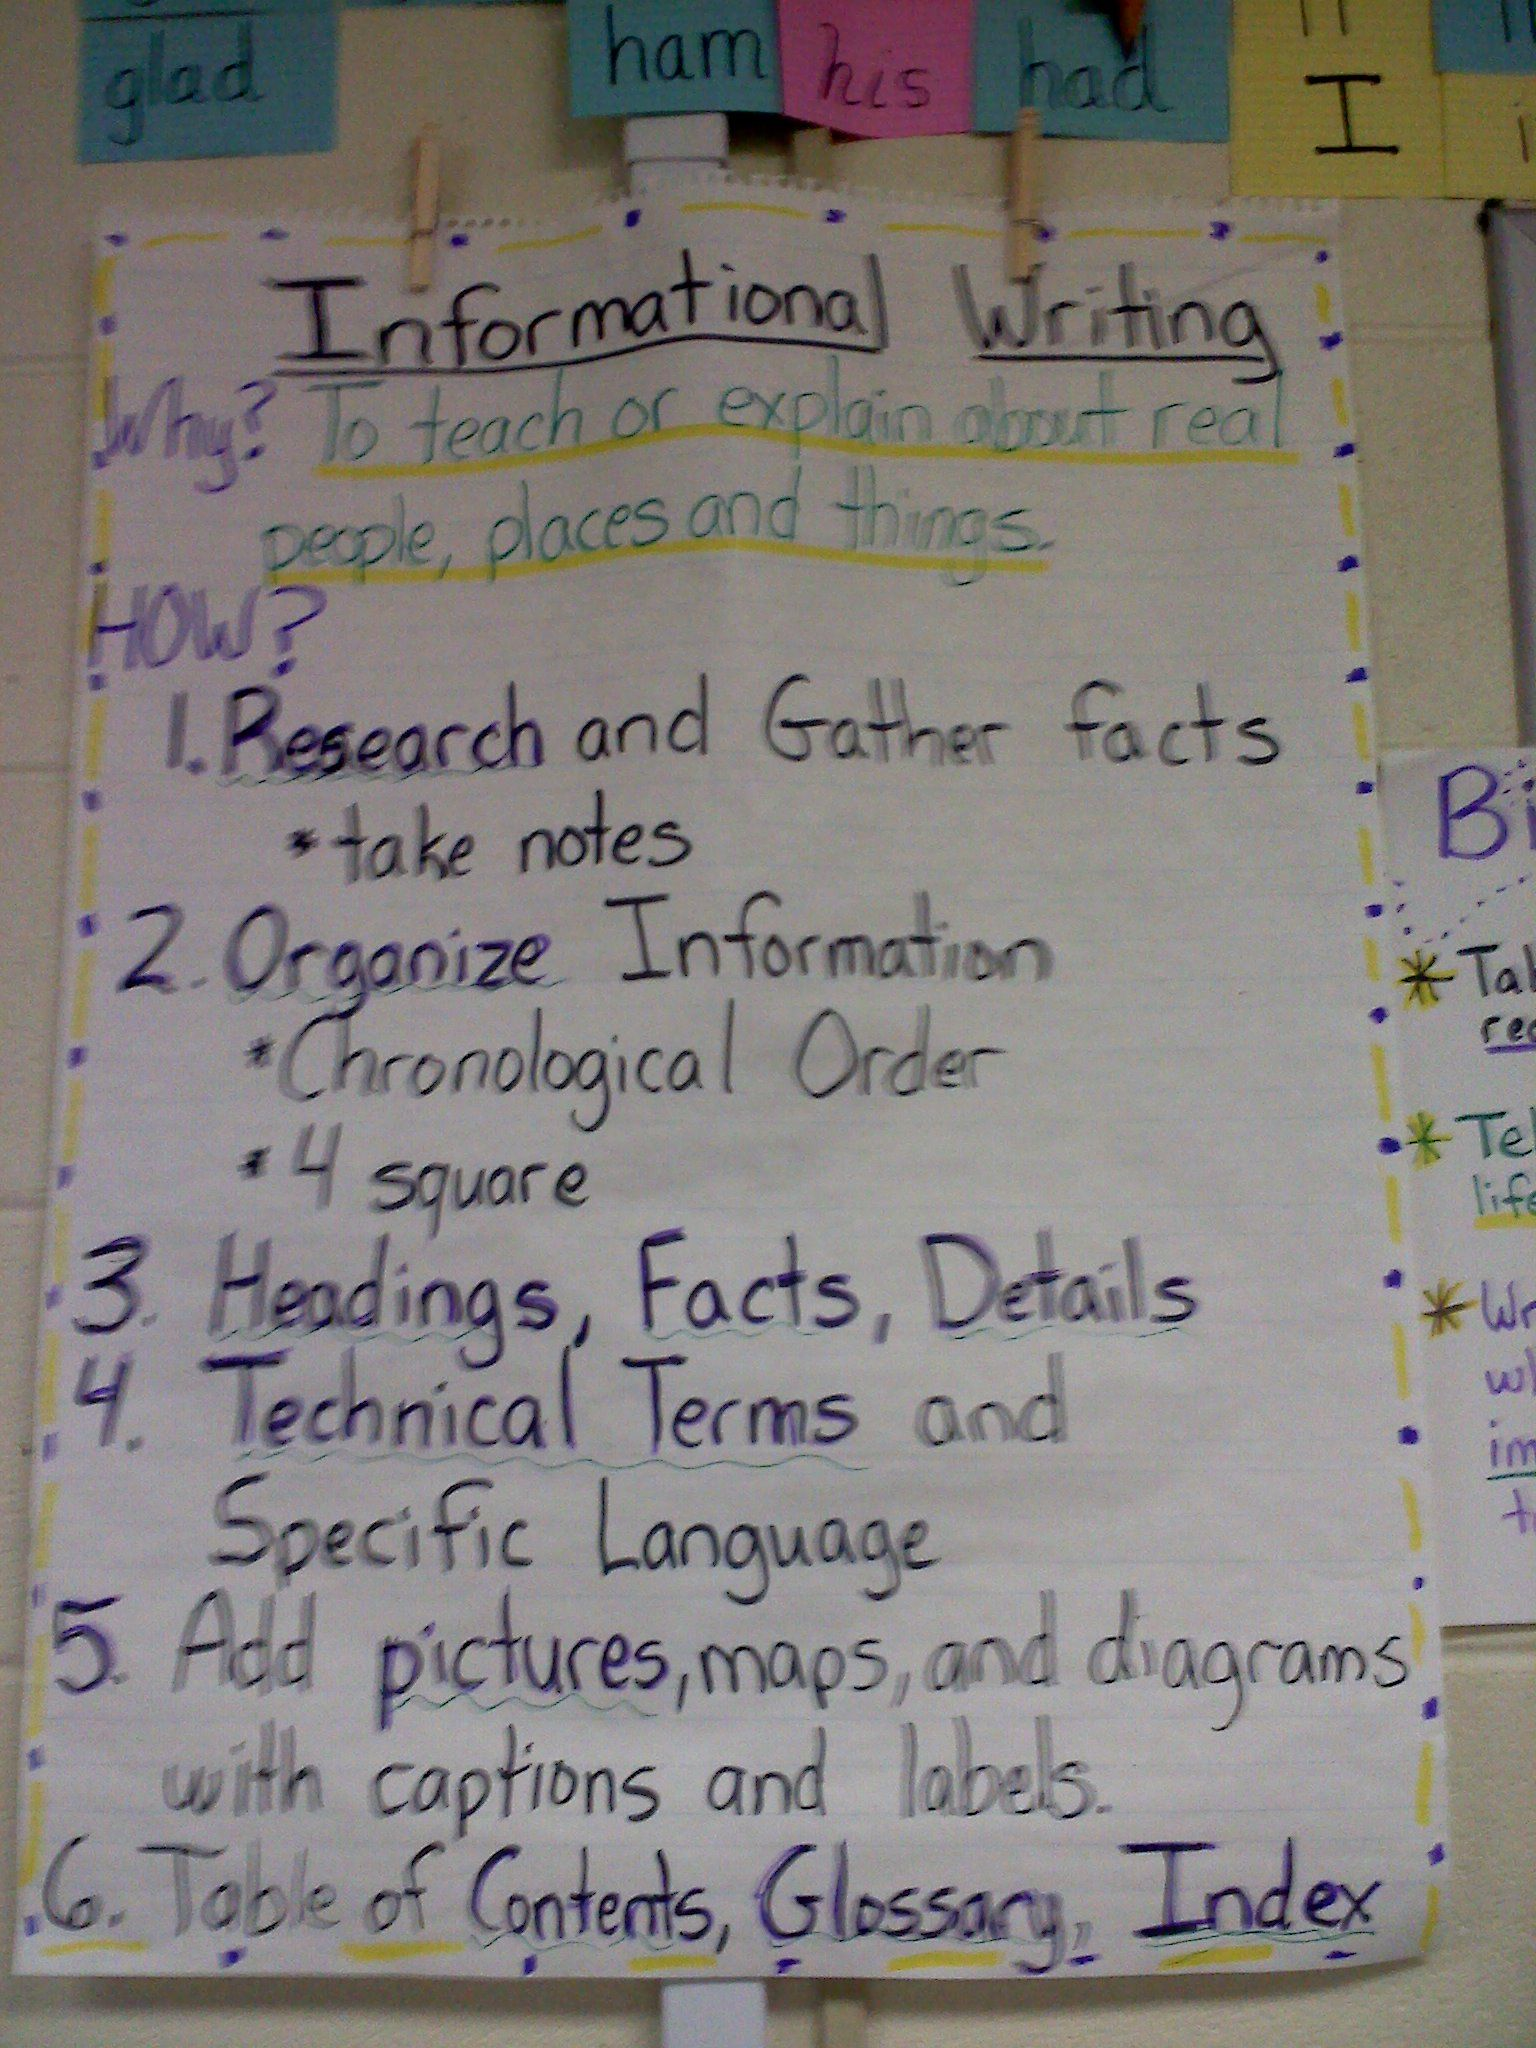 Anchor Chart That Explains The Why And How Of Informational Writing For Students